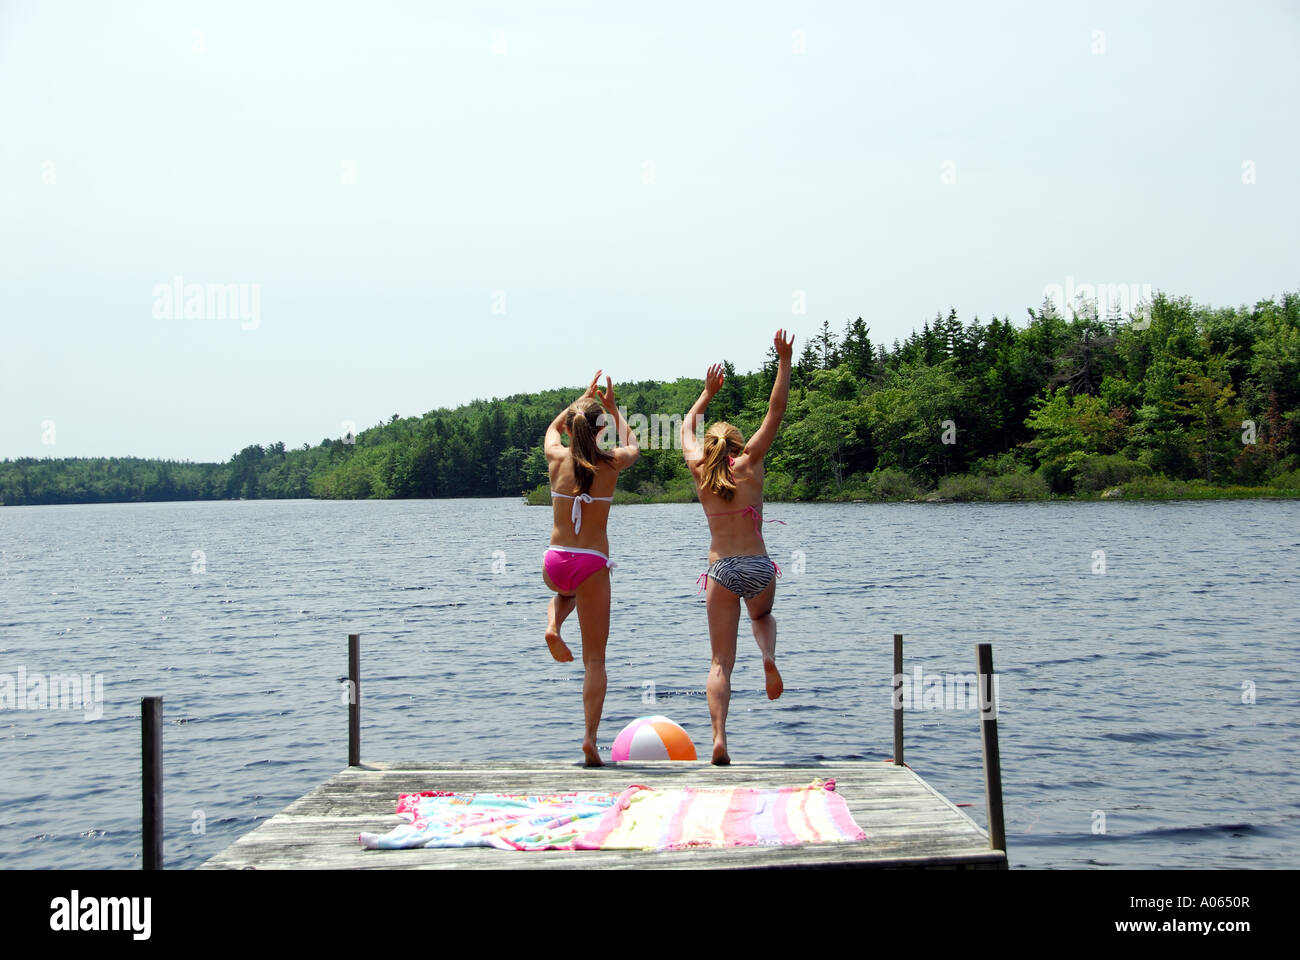 teenage girls jumping off dock into lake Stock Photo